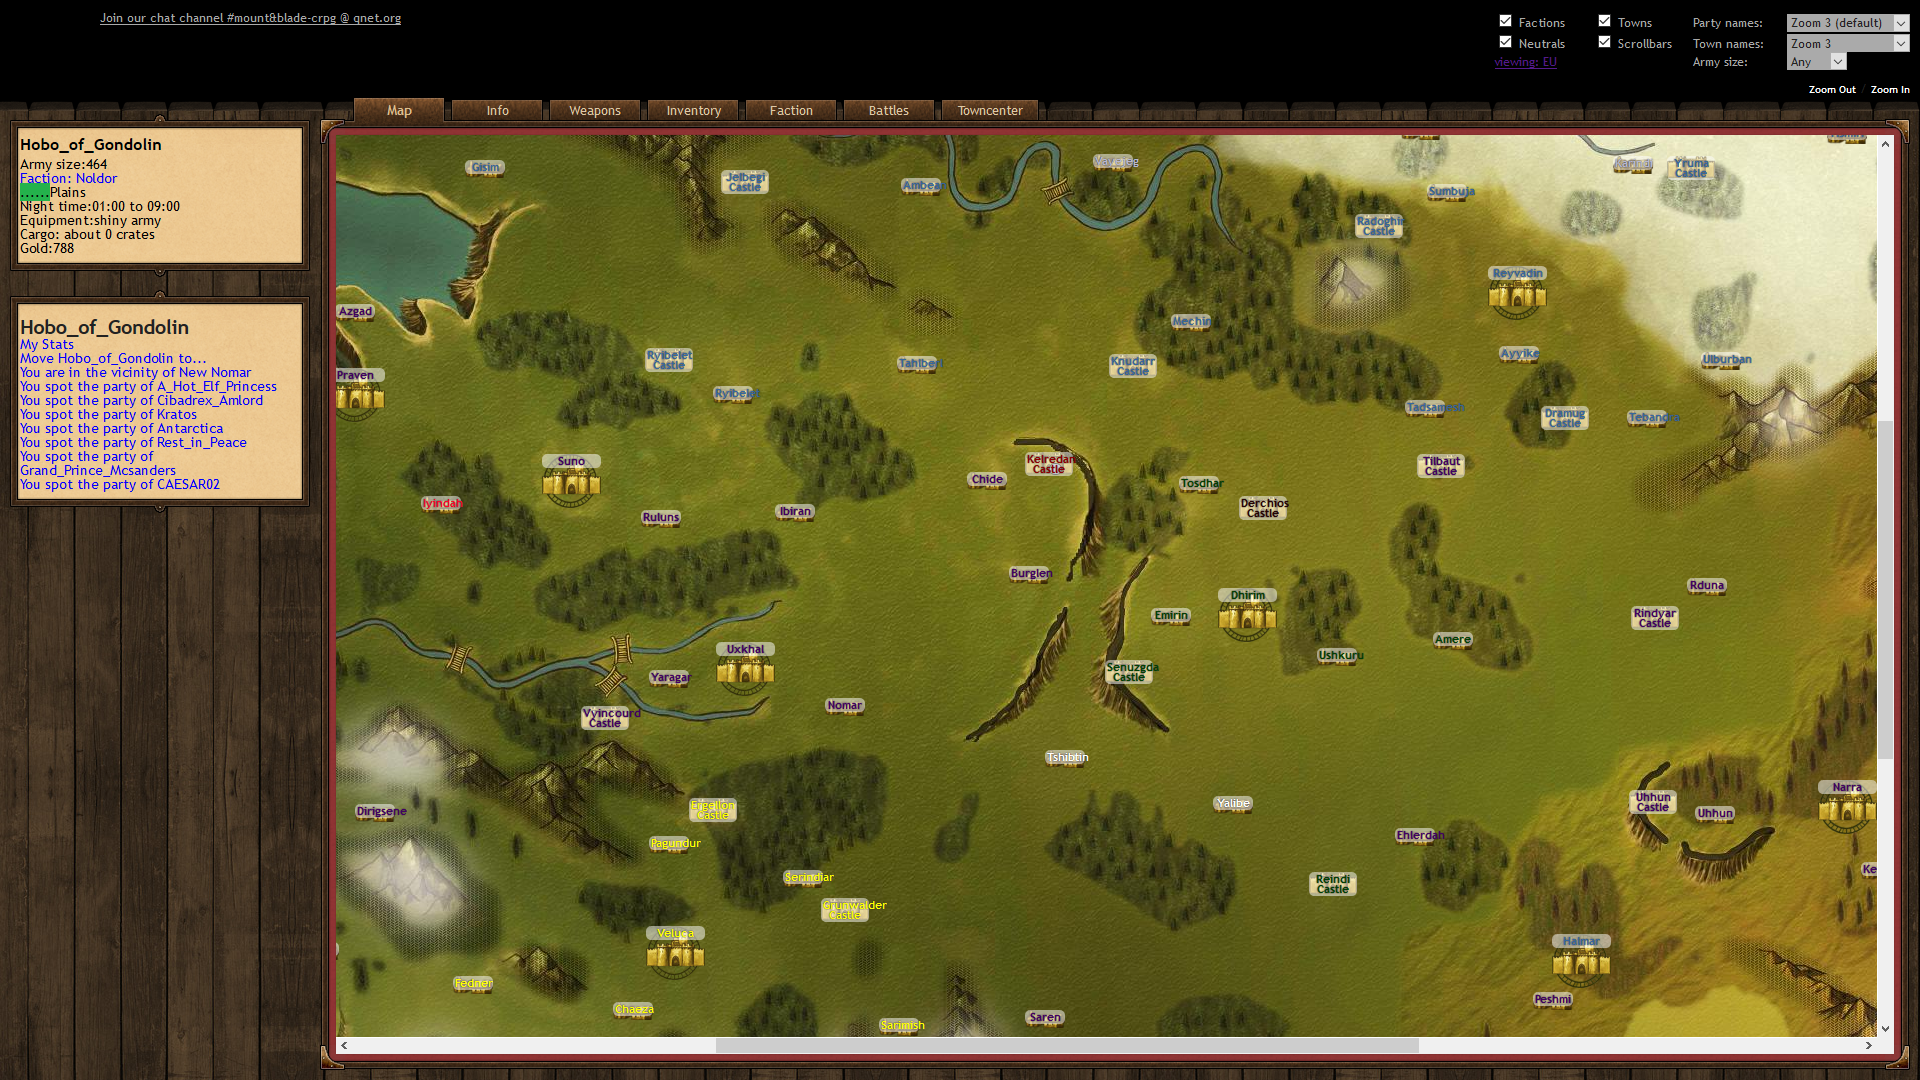 Crpg mount and blade wiki fandom powered by wikia strategus expands crpg to a browser based real time map gumiabroncs Choice Image